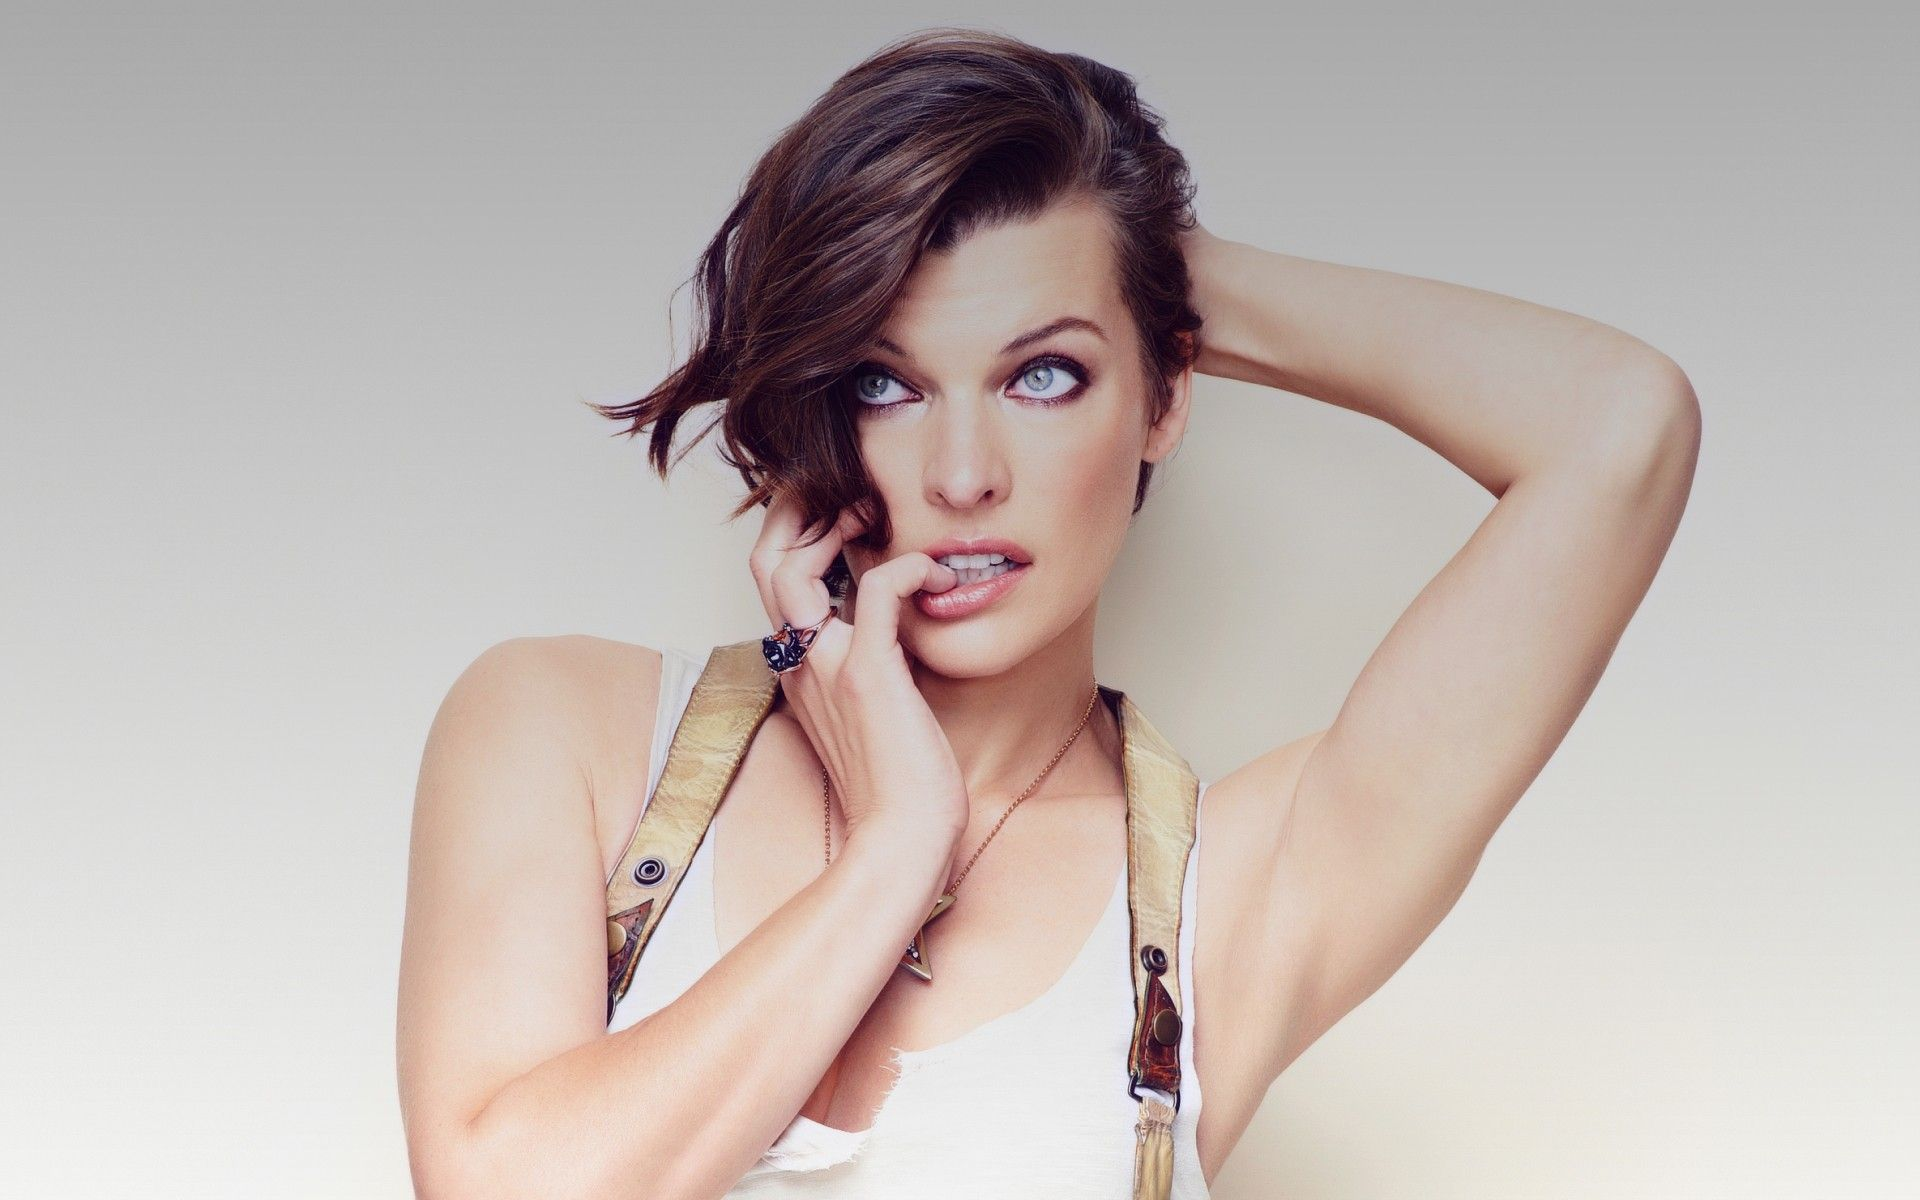 Celebrity Milla Jovovich nude (89 images), Hot